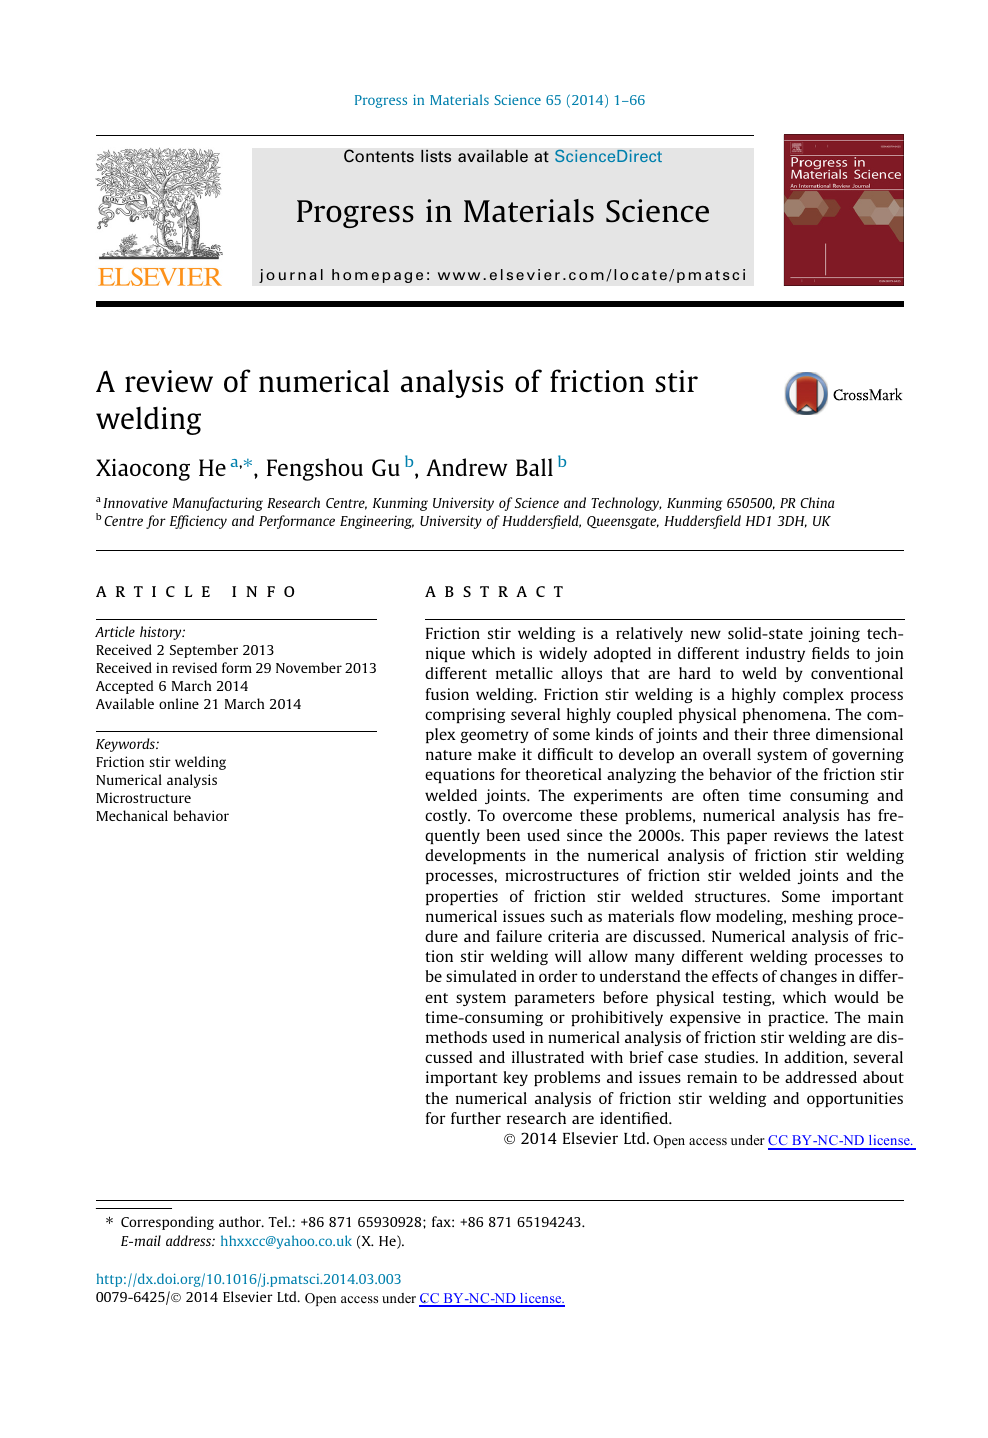 A review of numerical analysis of friction stir welding – topic of